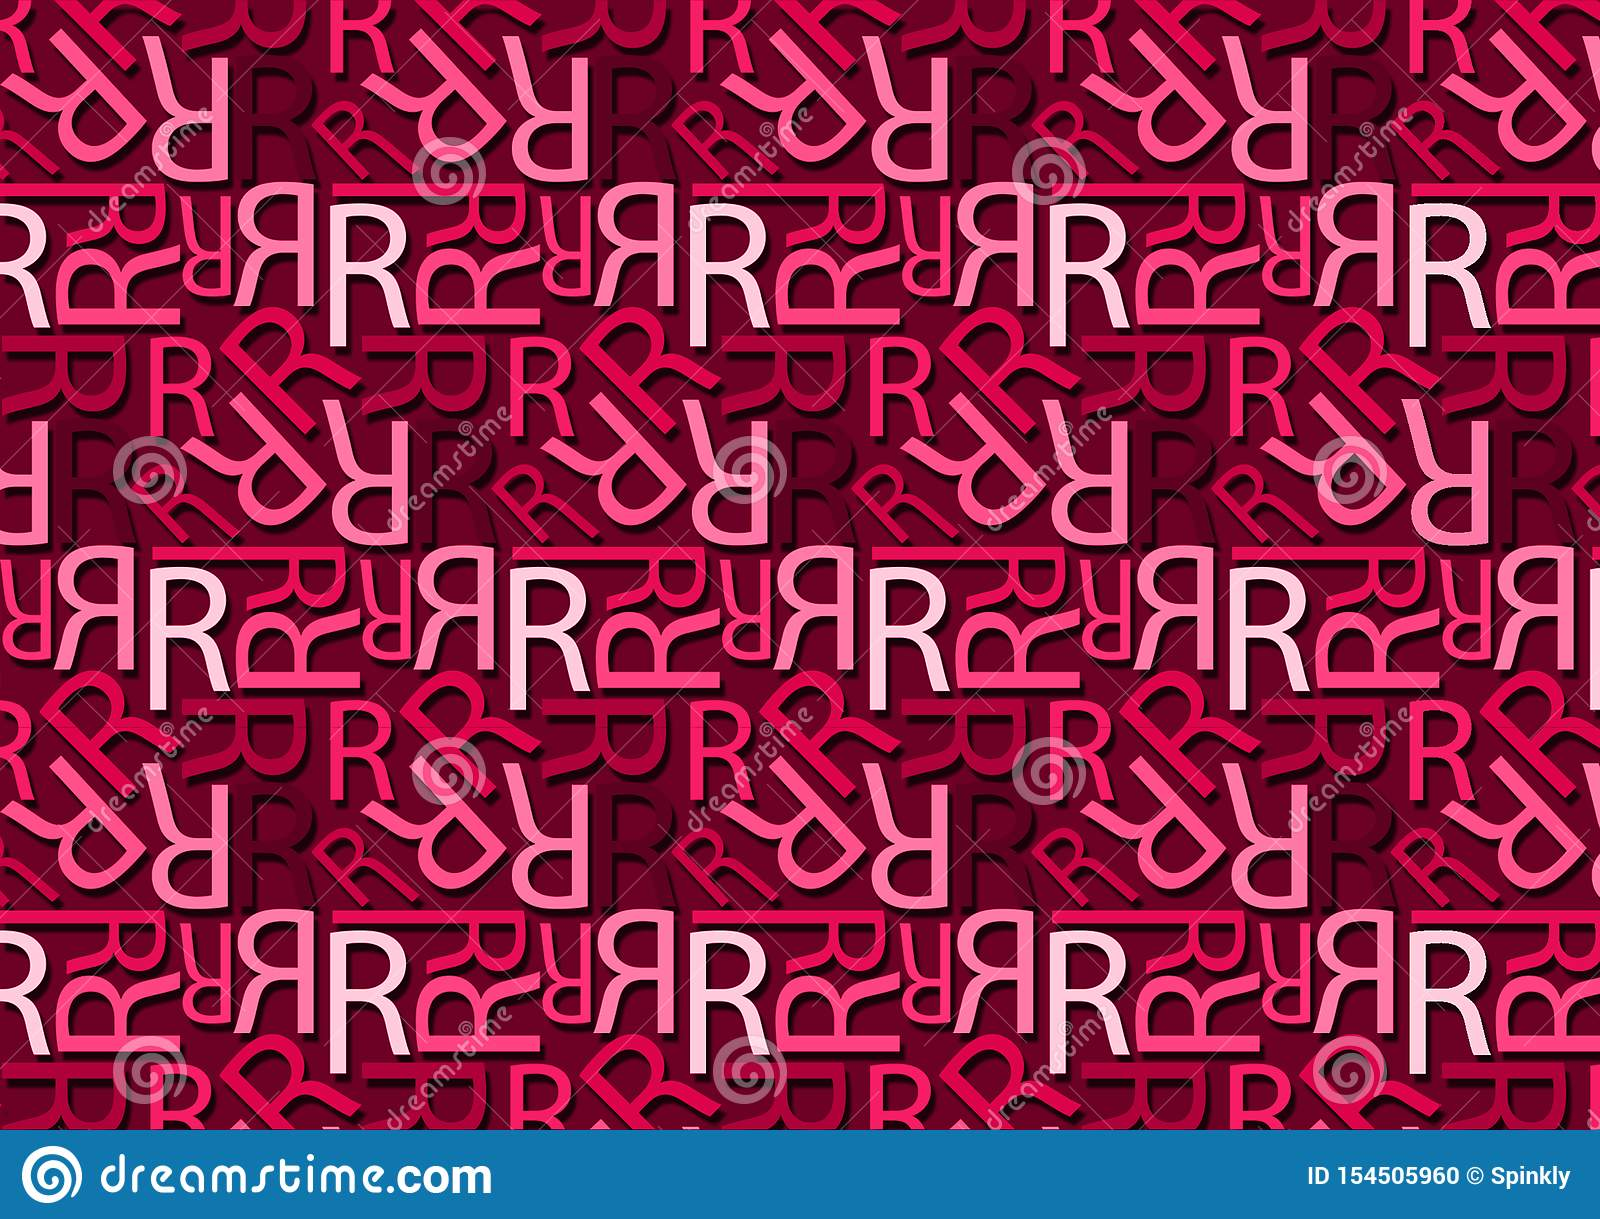 Letter R Pattern In Different Colored Pink Shades For